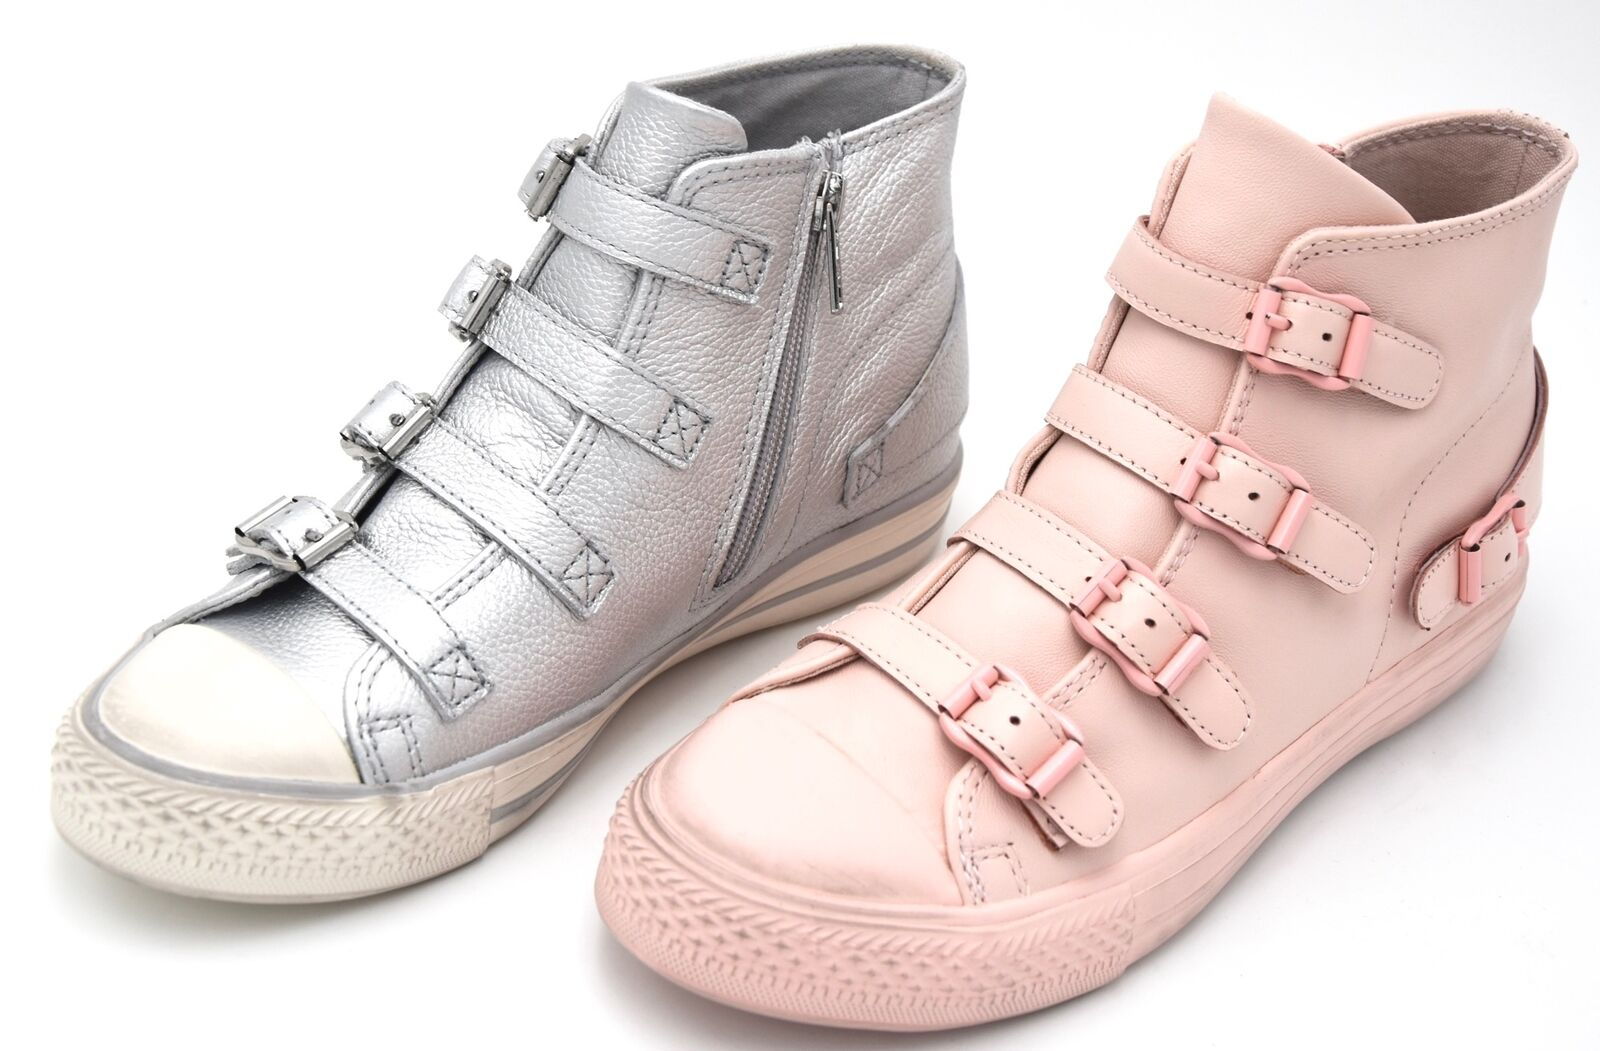 ASH WOMAN SNEAKER SHOES CASUAL FREE TIME LEATHER CODE SS18-V-123798 VENUS